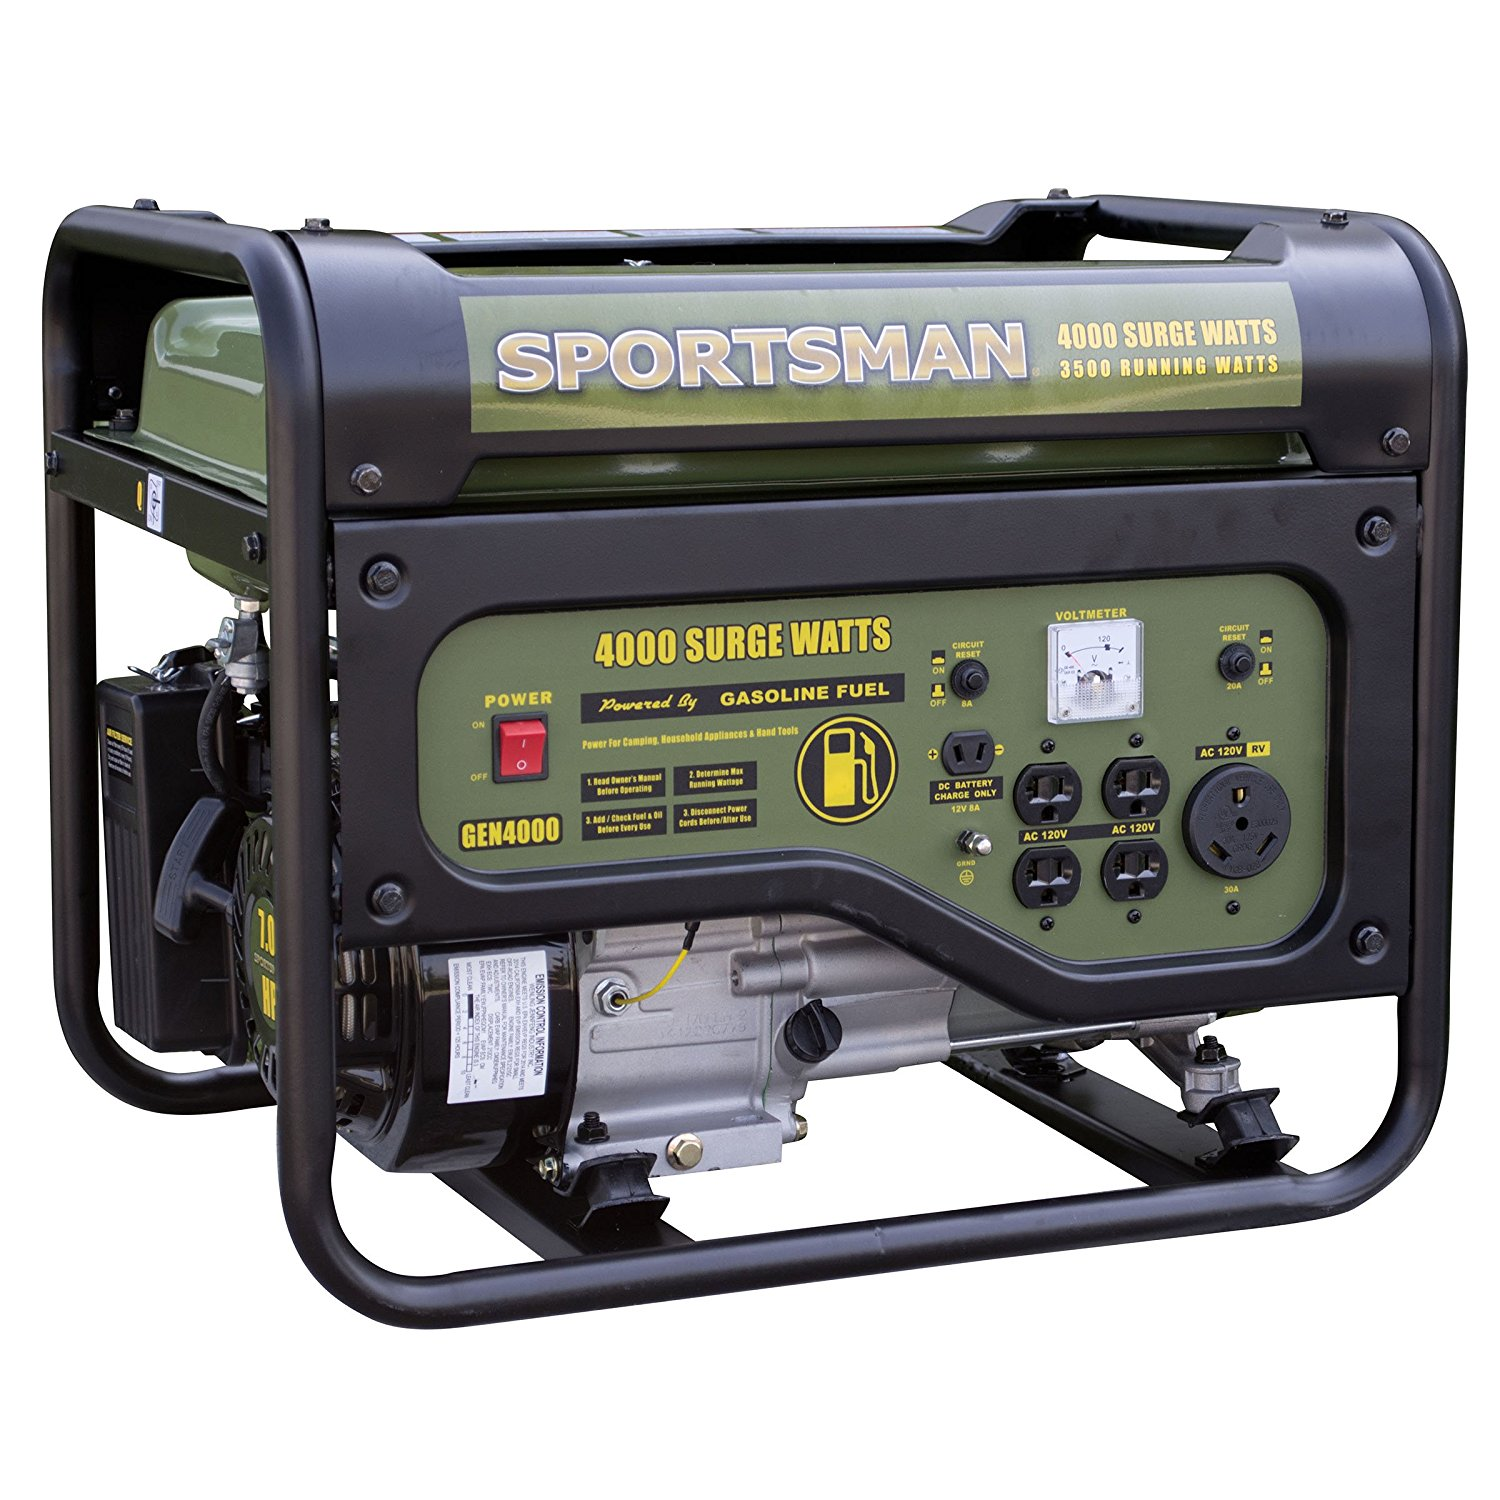 Sportsman GEN4000C, 3500 Running Watts/4000 Starting Watts, Gas Powered Portable Generator